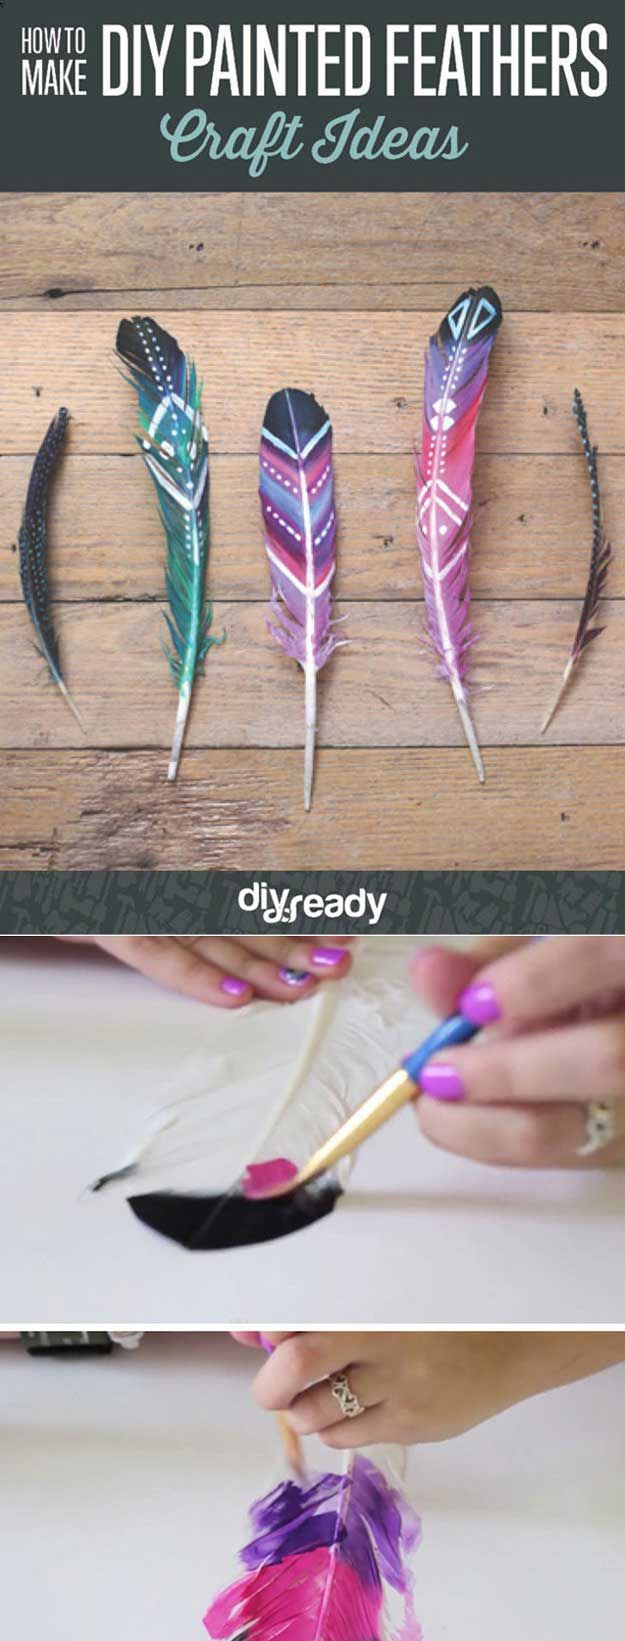 Simple and Cheap Decor Ideas for Teen Girls | DIY Painted Feathers by DIY Ready at http://diyready.com/27-cool-diy-projects-for-teen-girls/